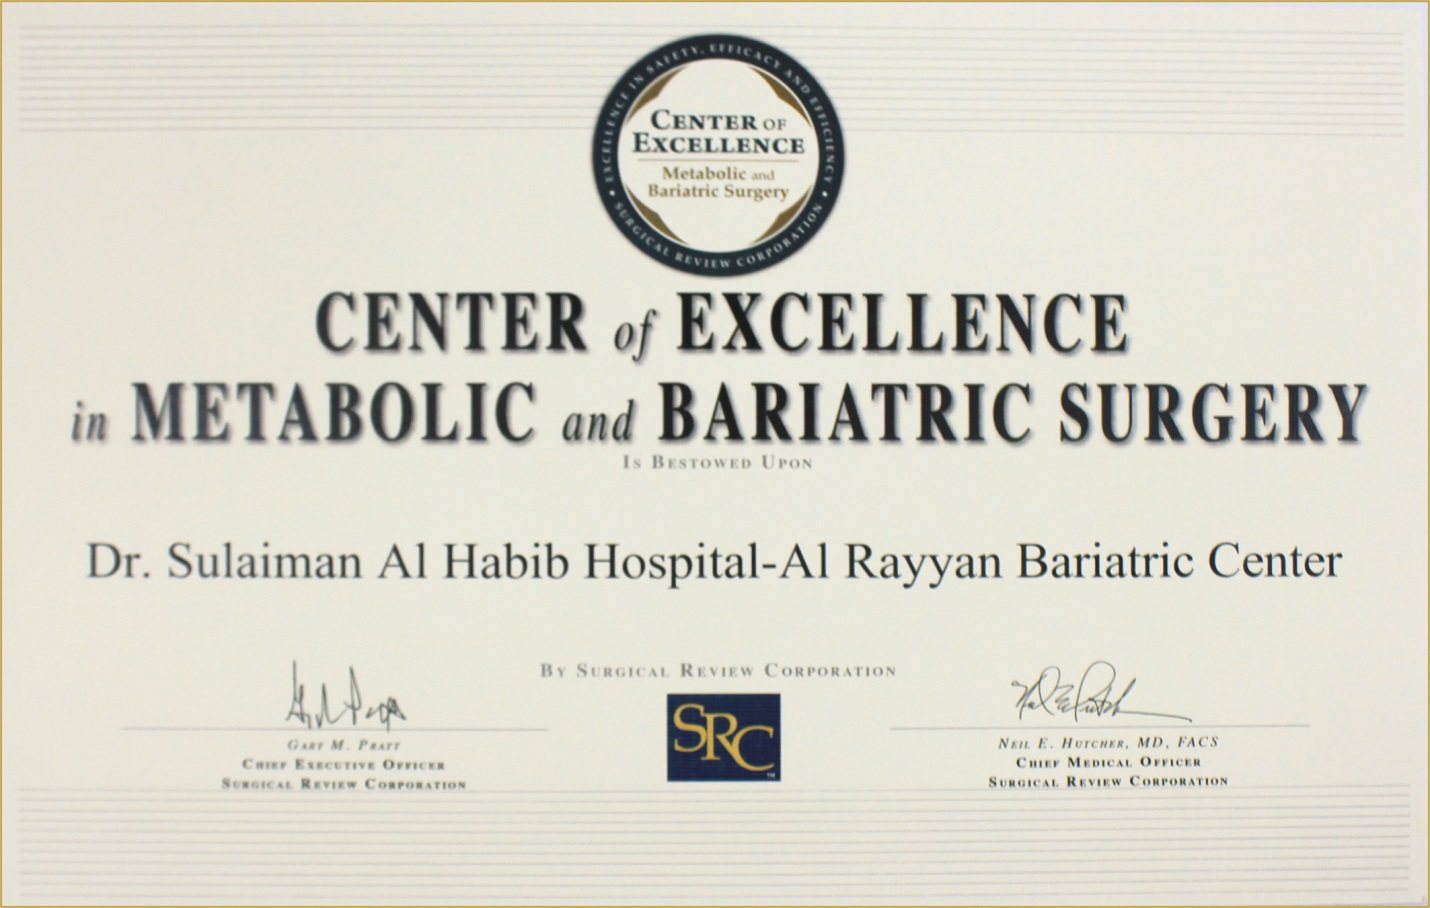 HMG's Obesity Treatments Centers has been solely accredited as the first Specialized Centers of Excellence in the Region by The (SRC) American Institution